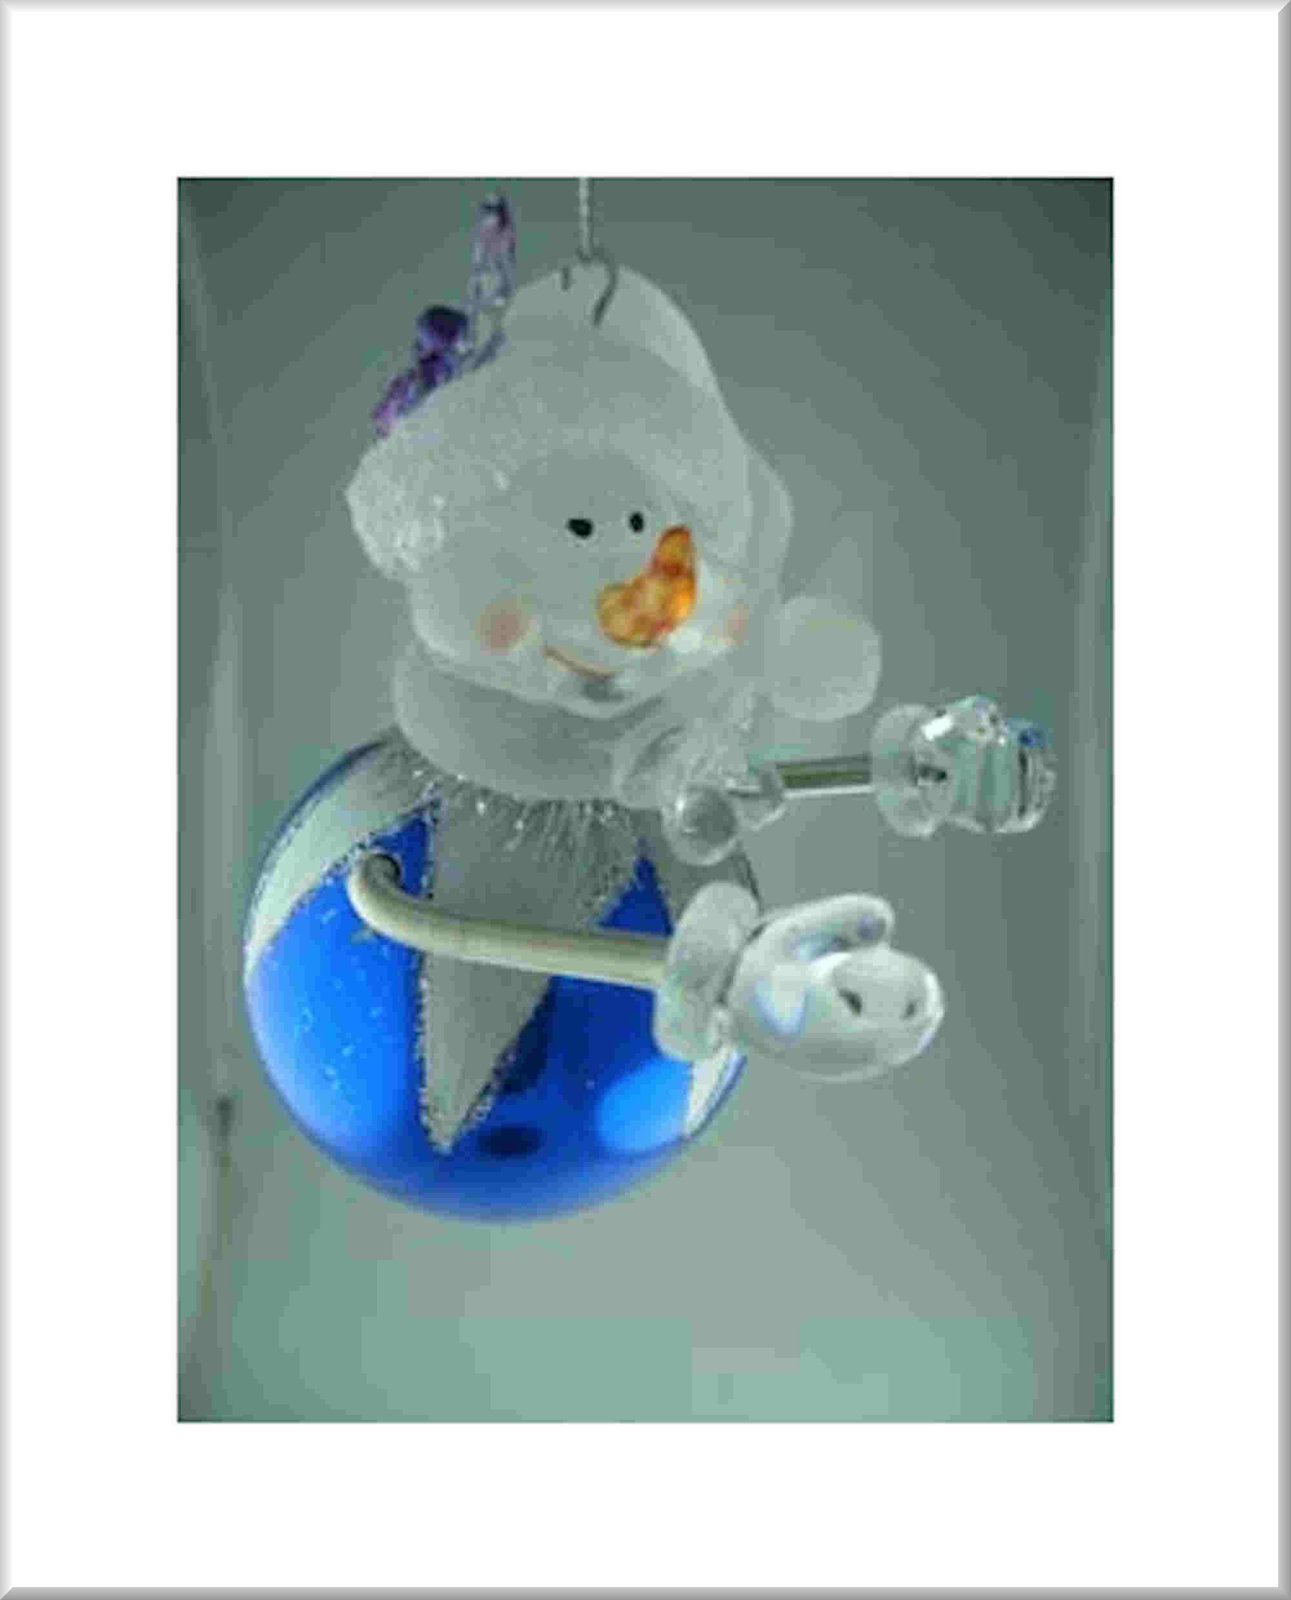 xmas tree hanging snowman made from acrylic in gift box